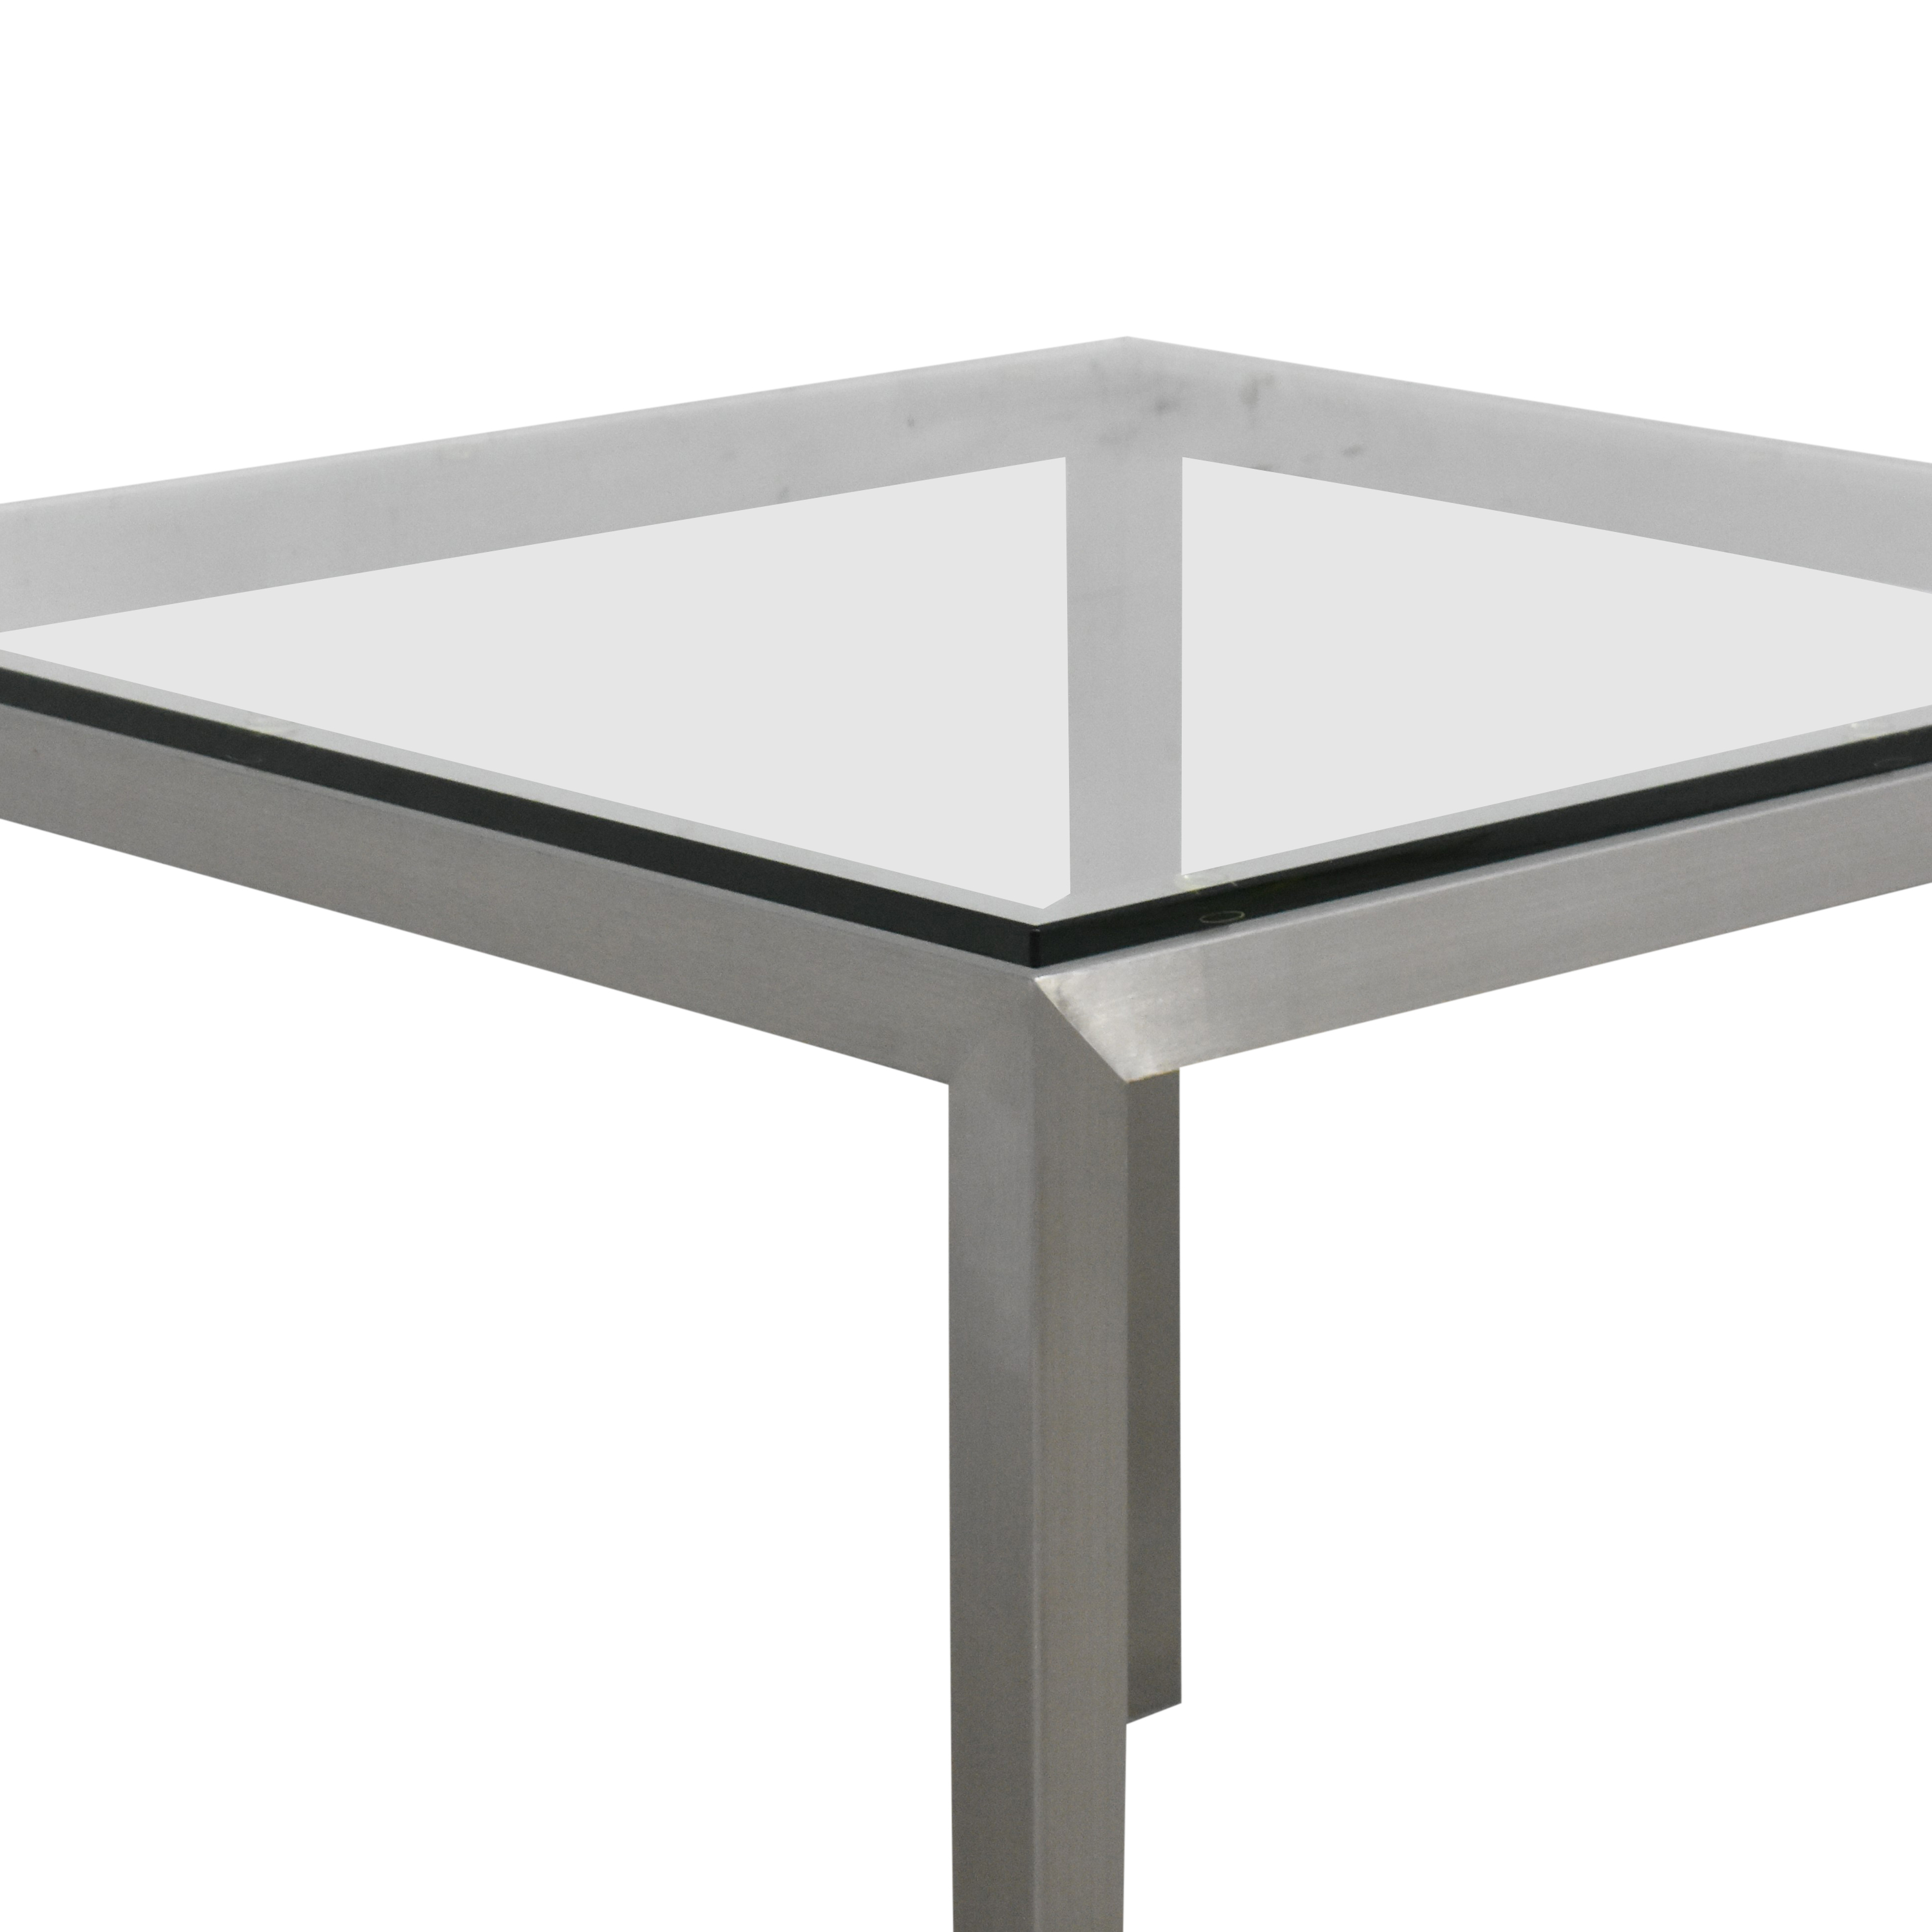 Crate & Barrel Crate & Barrel Parsons Square Dining Table discount